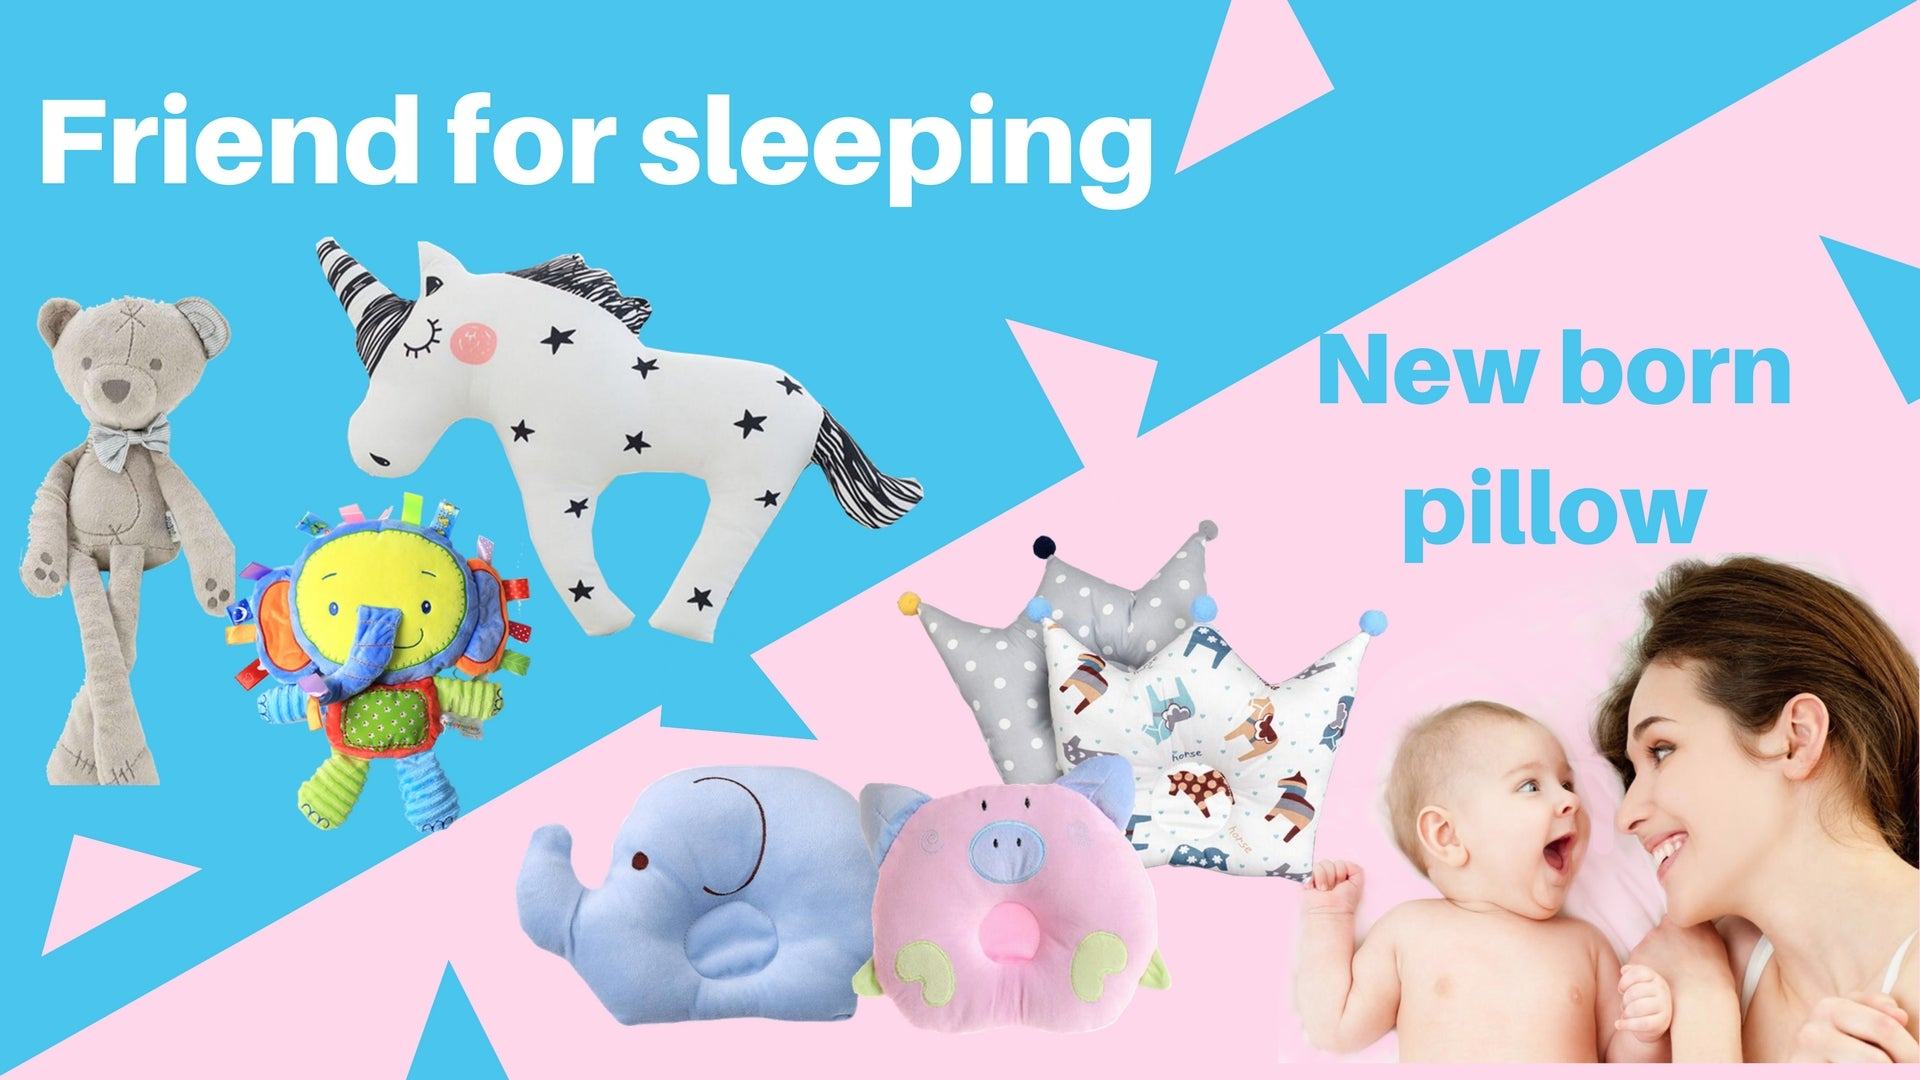 friend for sleeping special orthopadic new born pillow